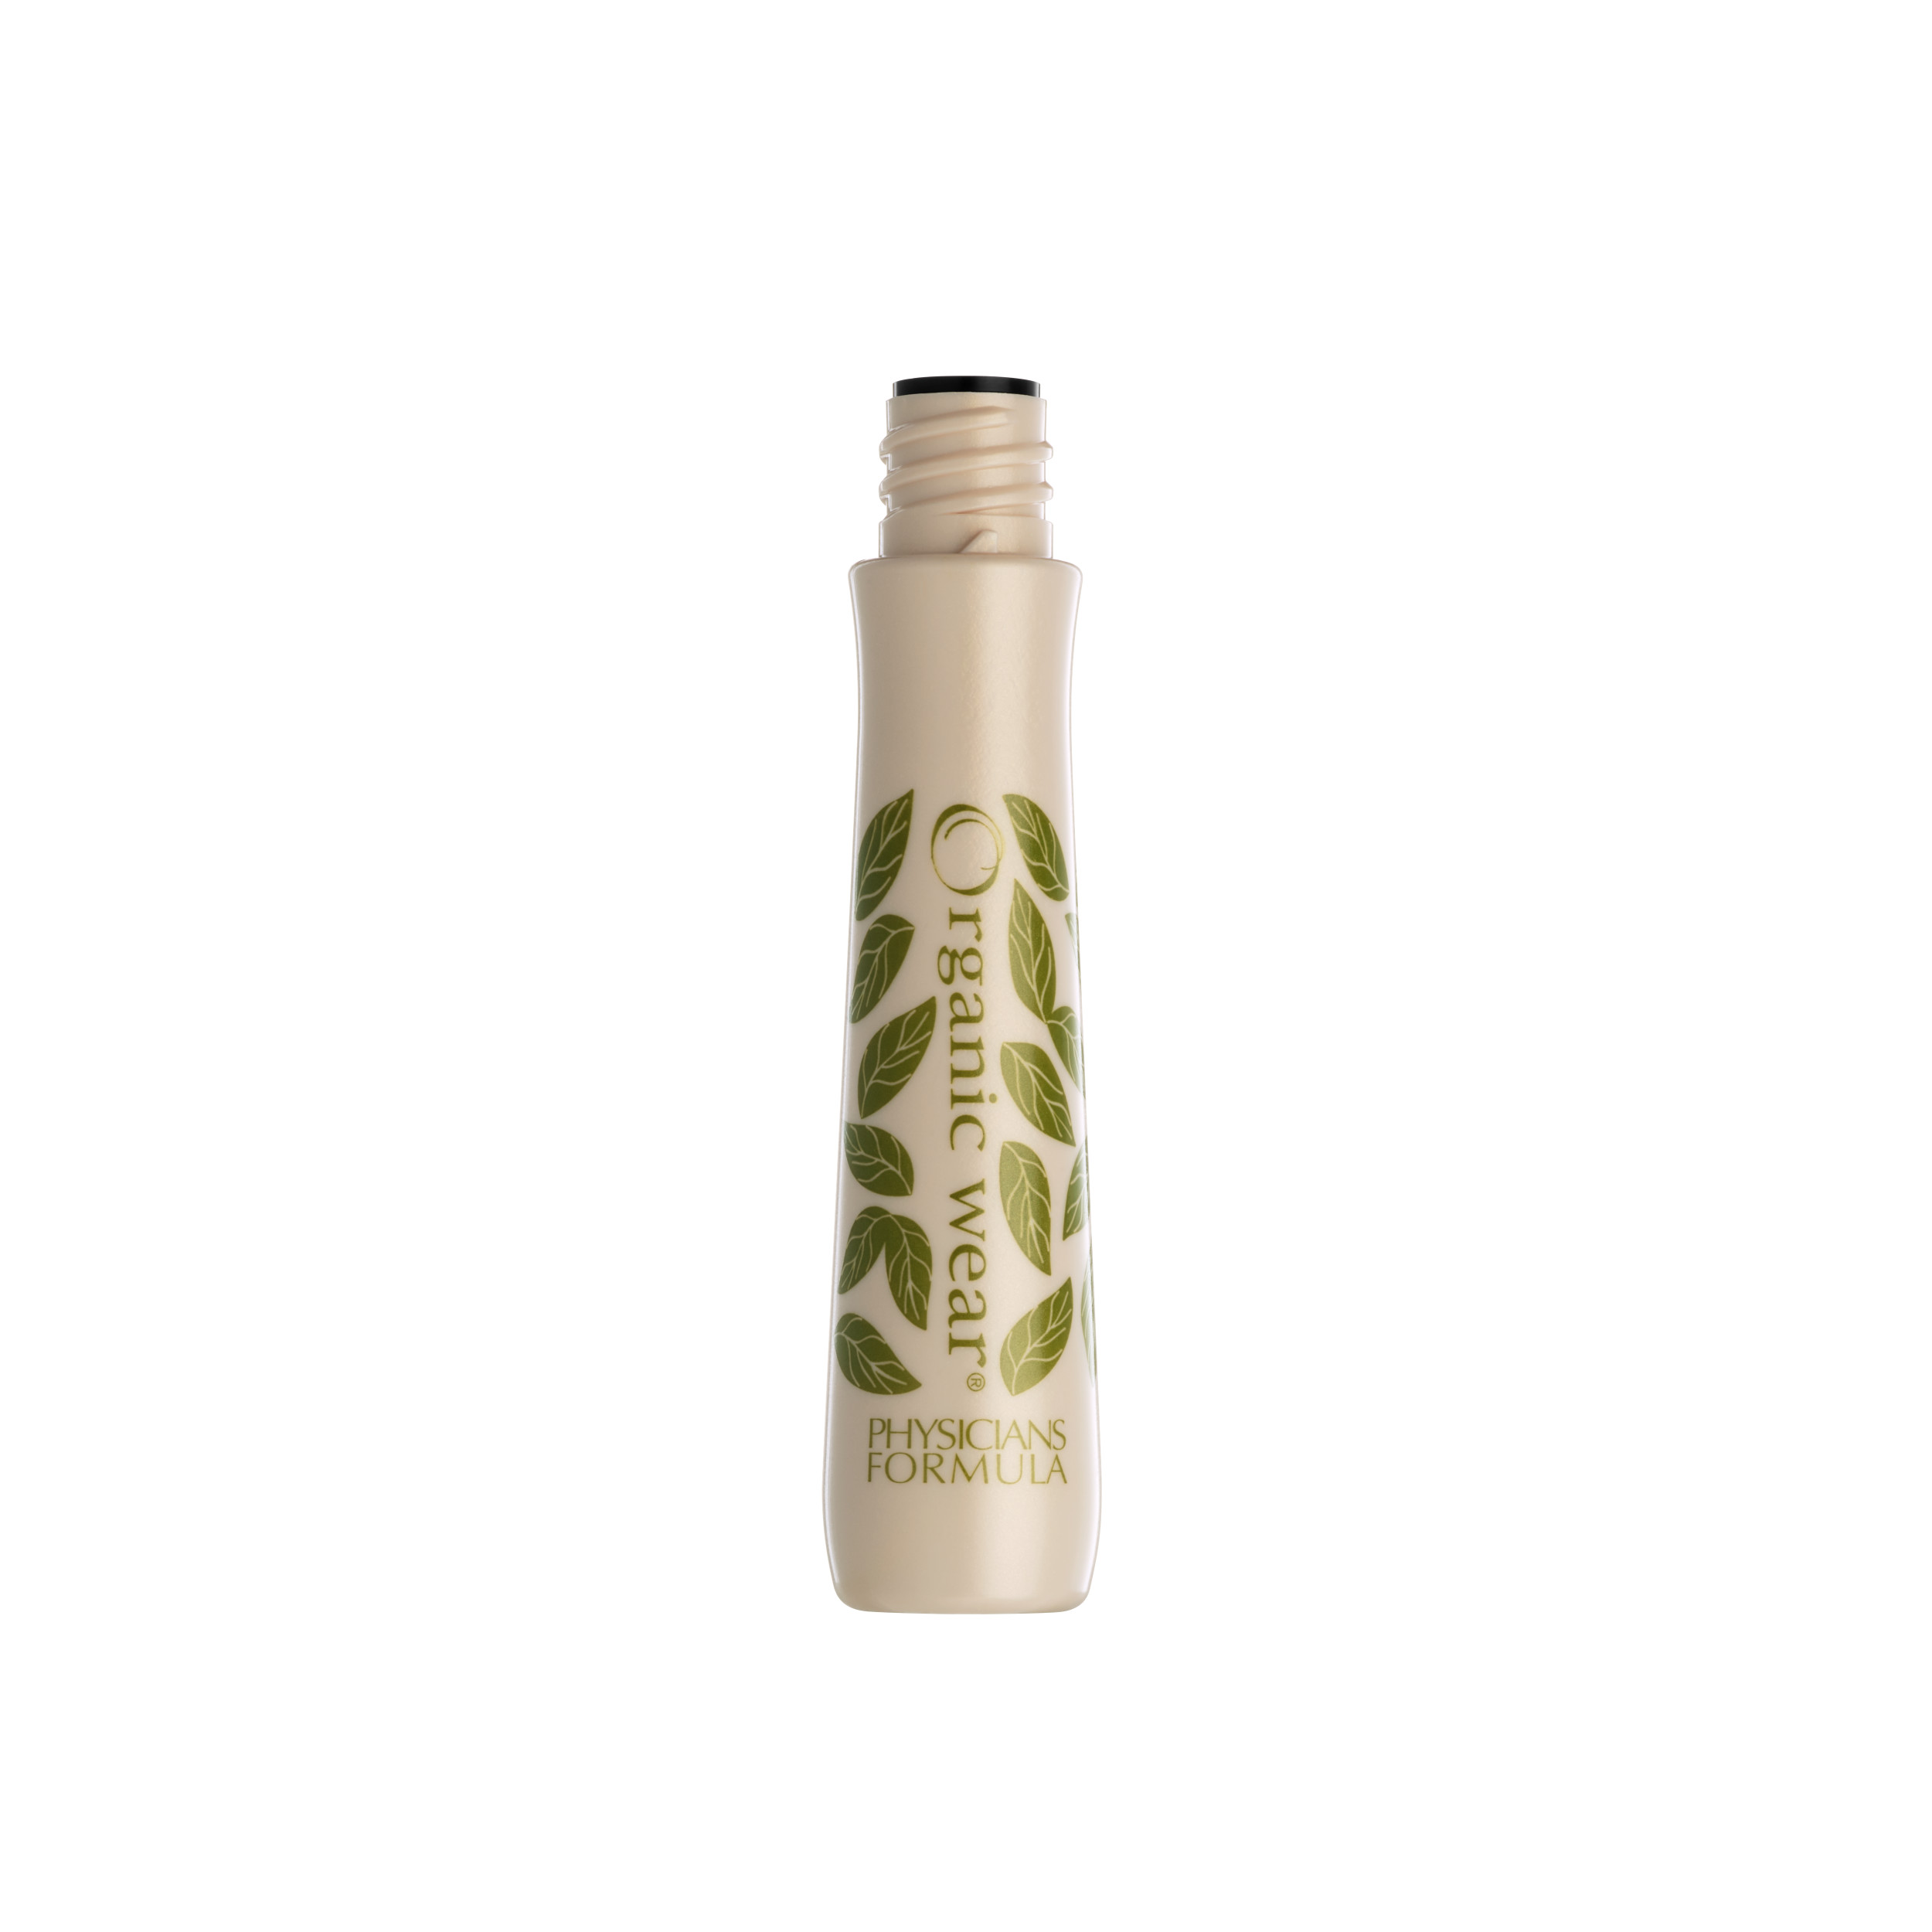 ae45004f950 Physicians Formula Organic Wear 100% Natural Origin Mascara, Ultra Black  Organics - Walmart.com